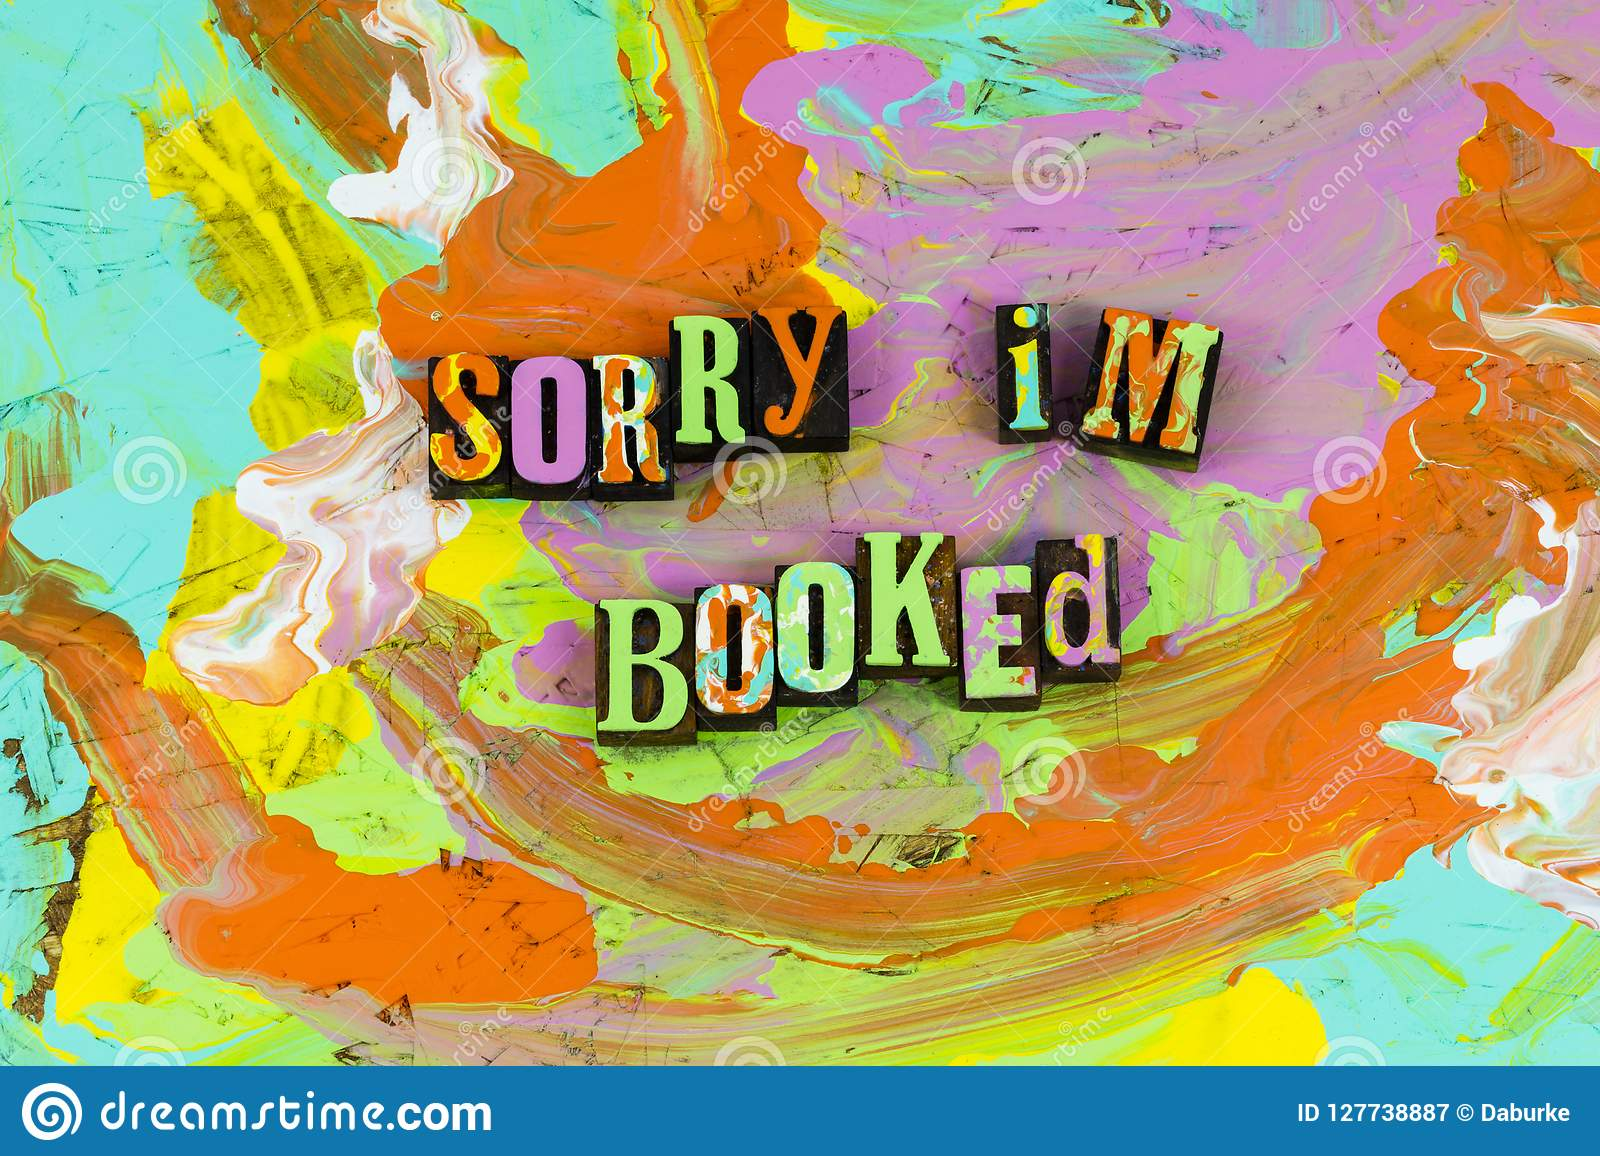 Sorry booked reading